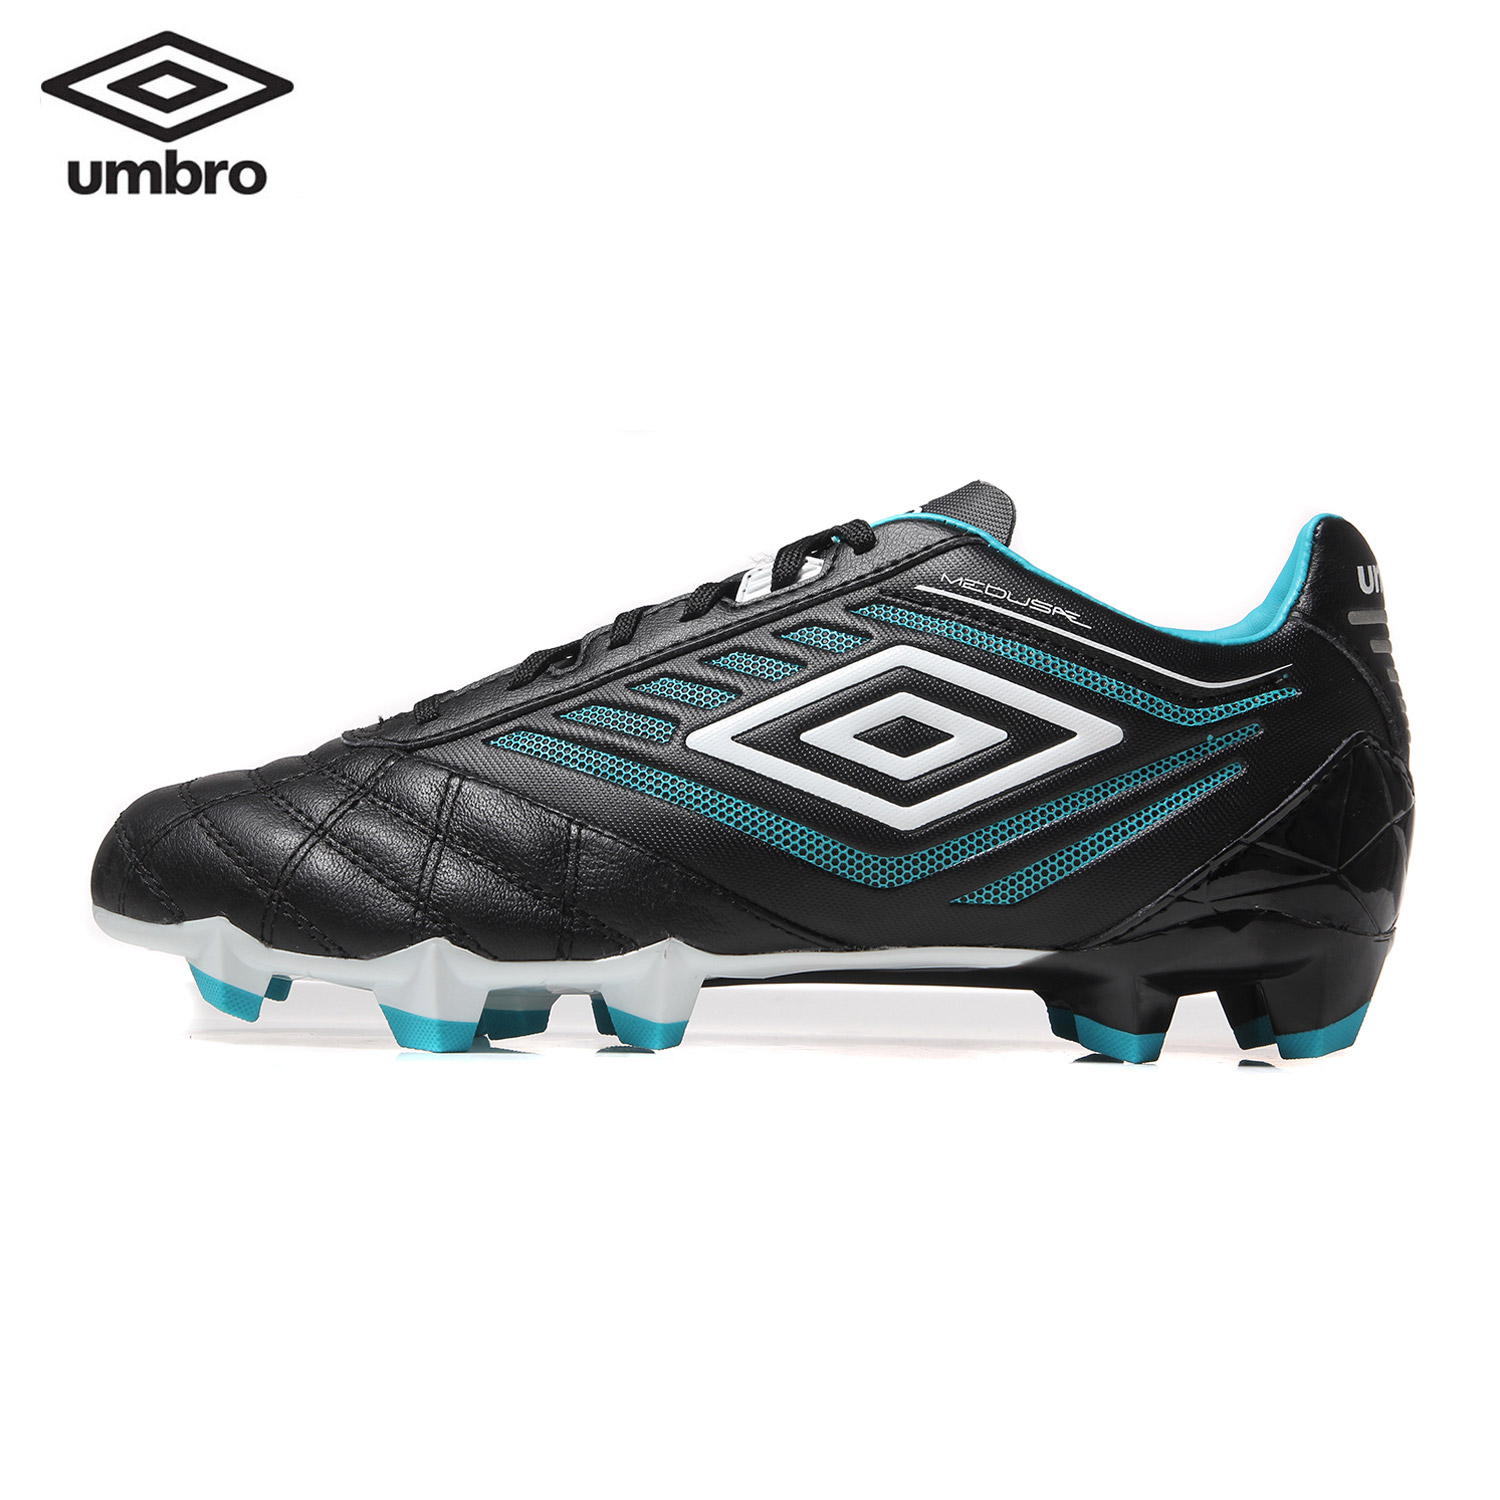 Umbro New Men Hard Groud Professional Training Sports Football Shoes Soccer Boots Men Spike Shoes Ucb90137 umbro new men hard groud professional training sports football shoes soccer boots men spike shoes ucb90137